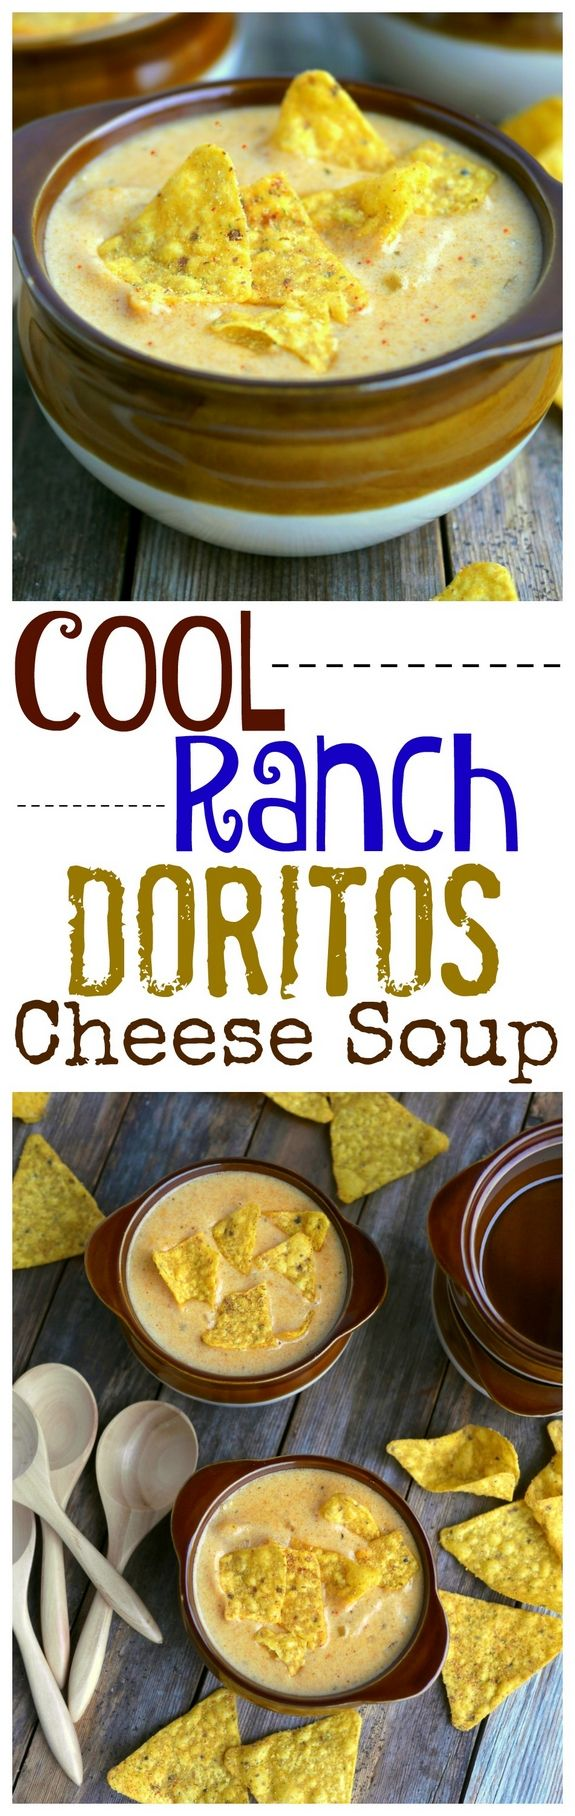 Cool Ranch Doritos Cheese Soup is going to knock your socks off from NoblePig.com.